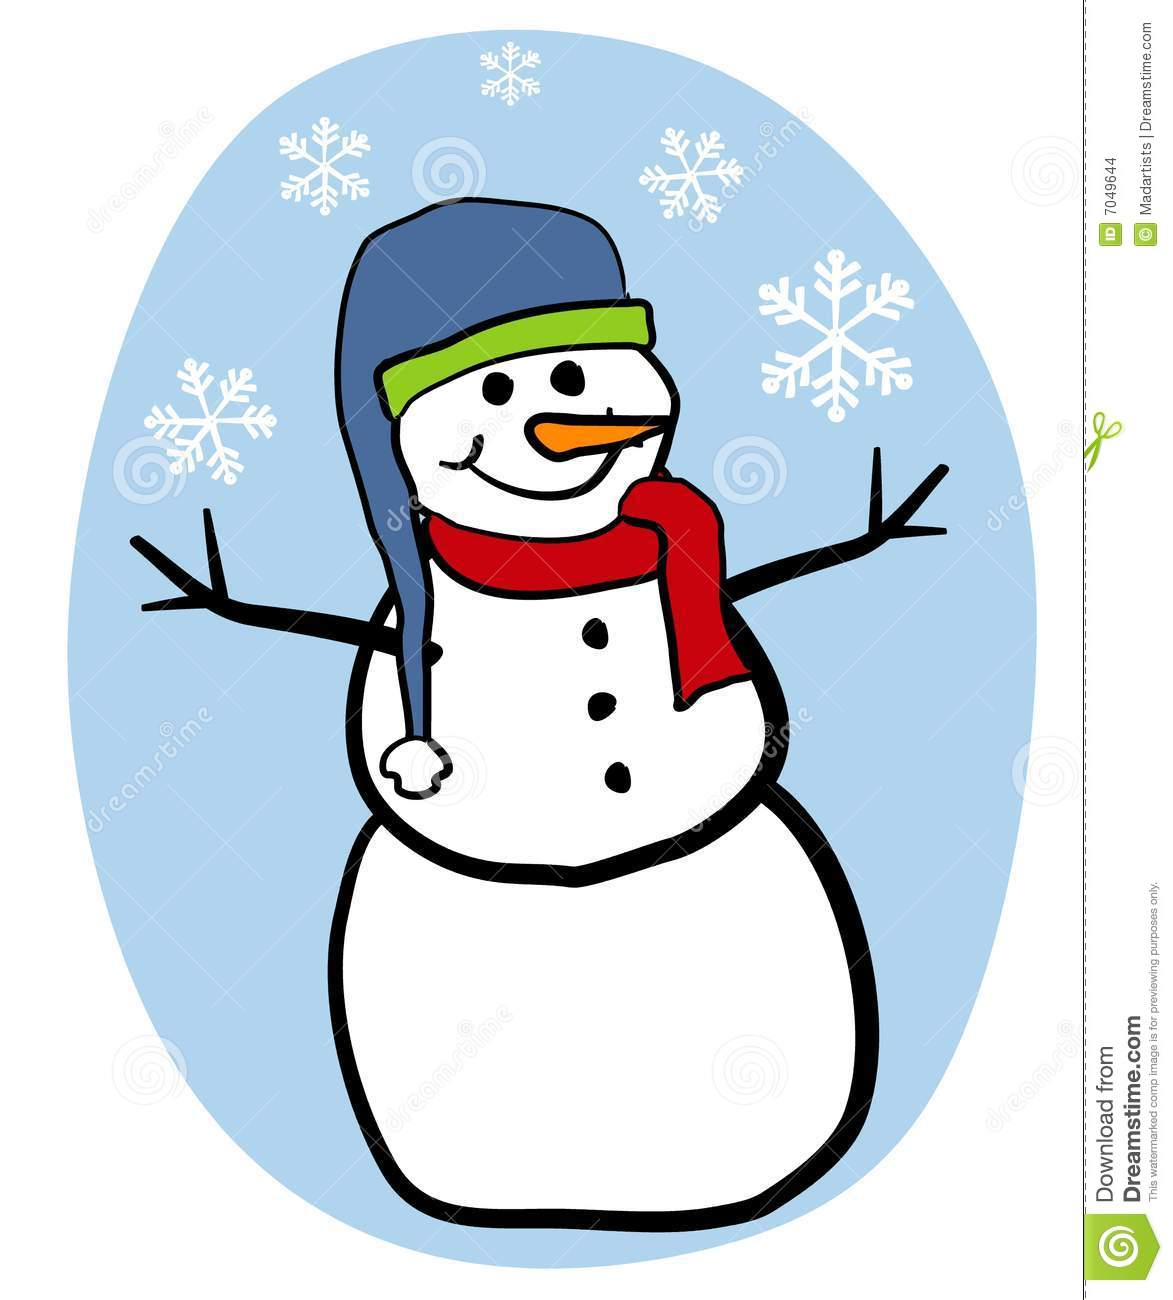 snowman clip art stock illustration illustration of cartoon 7049644 rh dreamstime com snowman clipart pictures snowman clip art free images